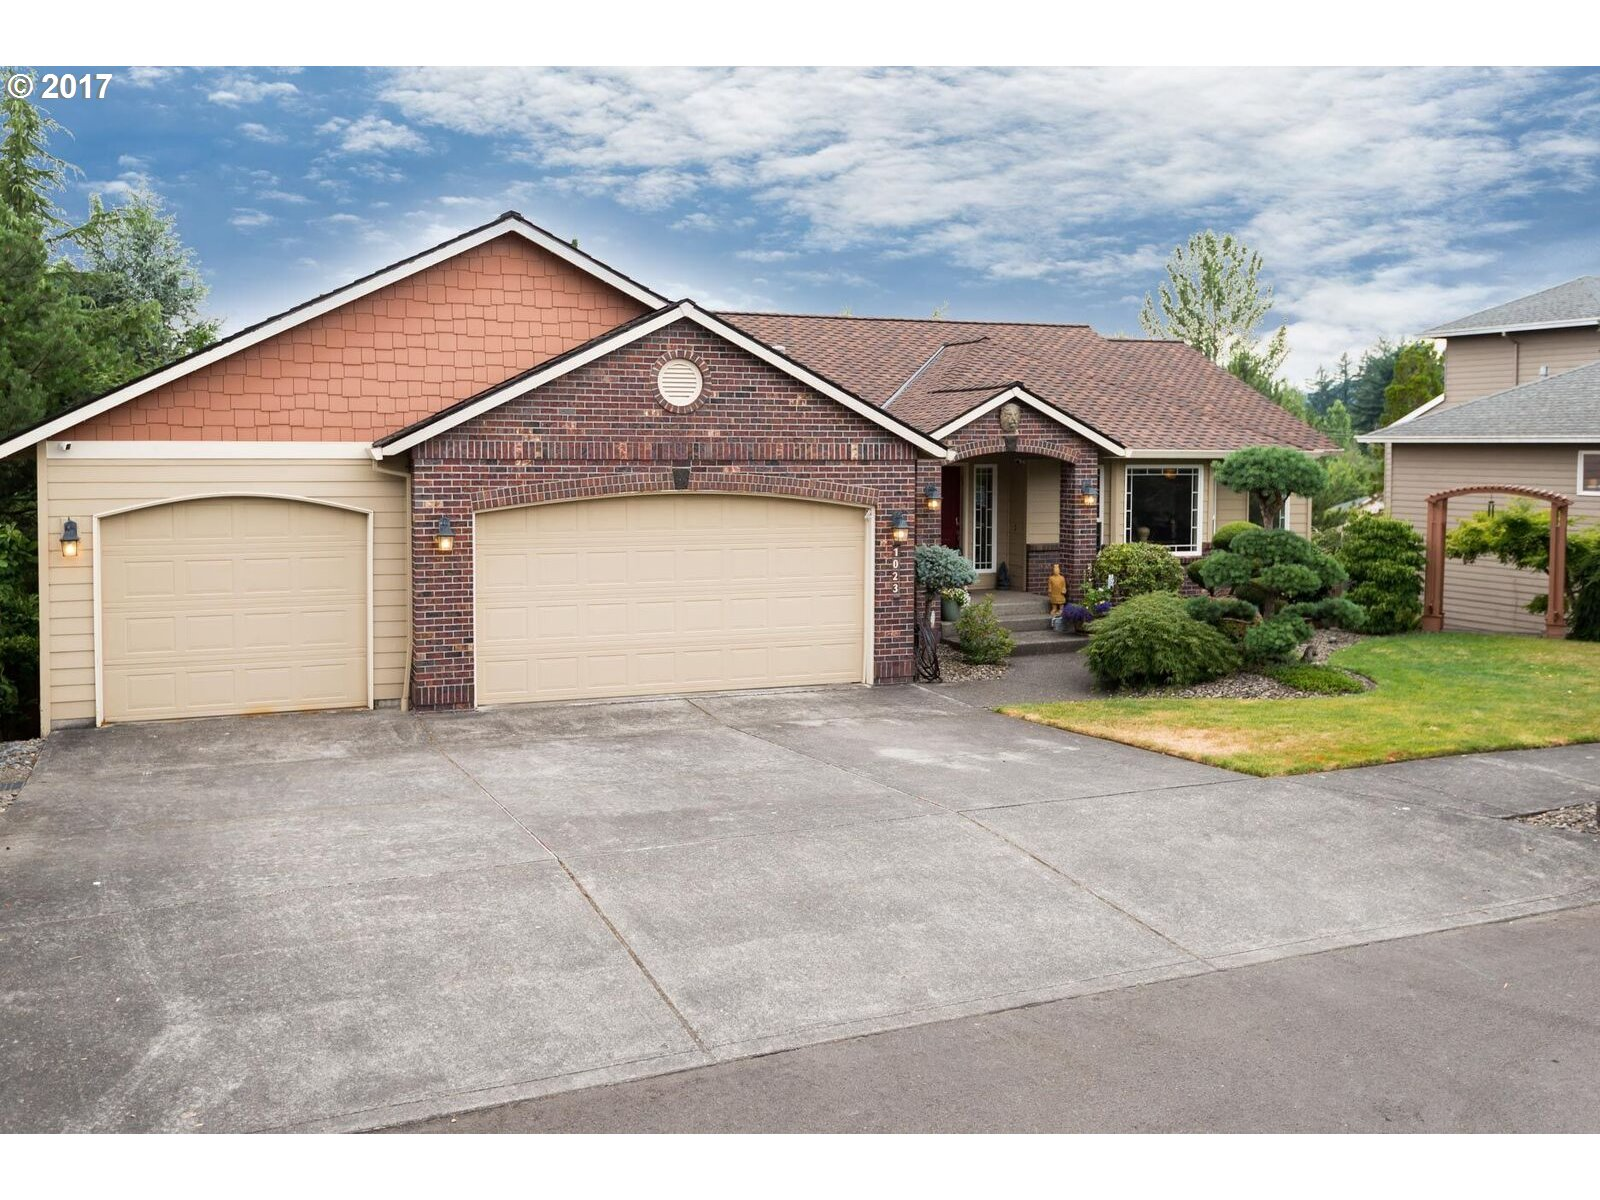 1023 SE 46TH AVE Troutdale, OR 97060 - MLS #: 17137673